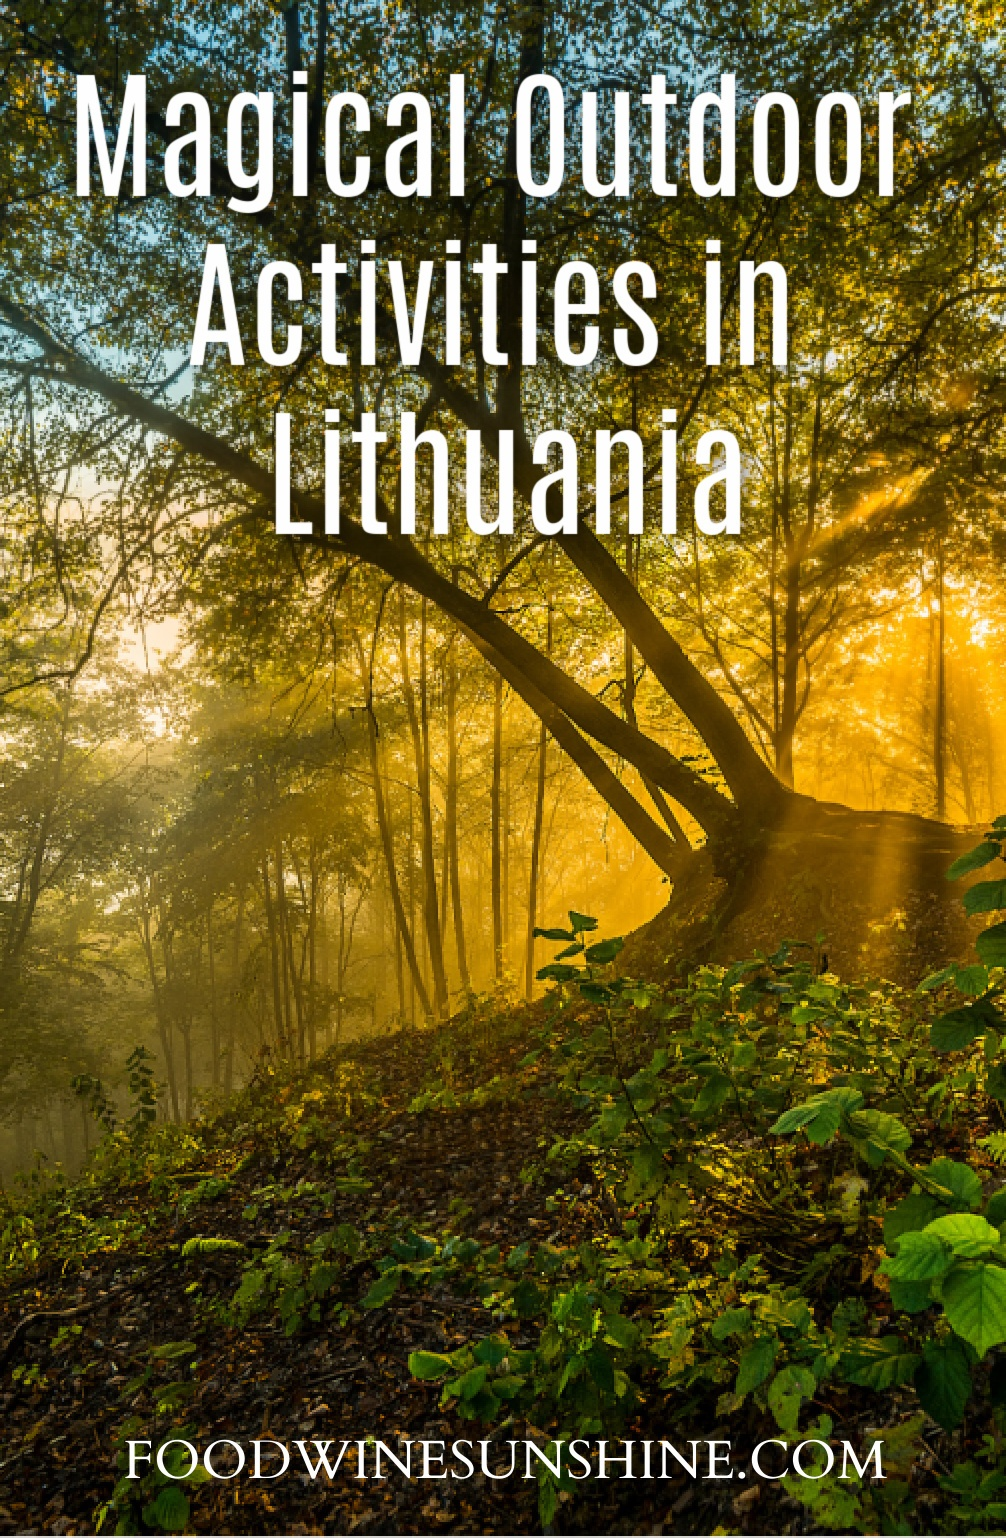 Magical Outdoor Activities in Lithuania